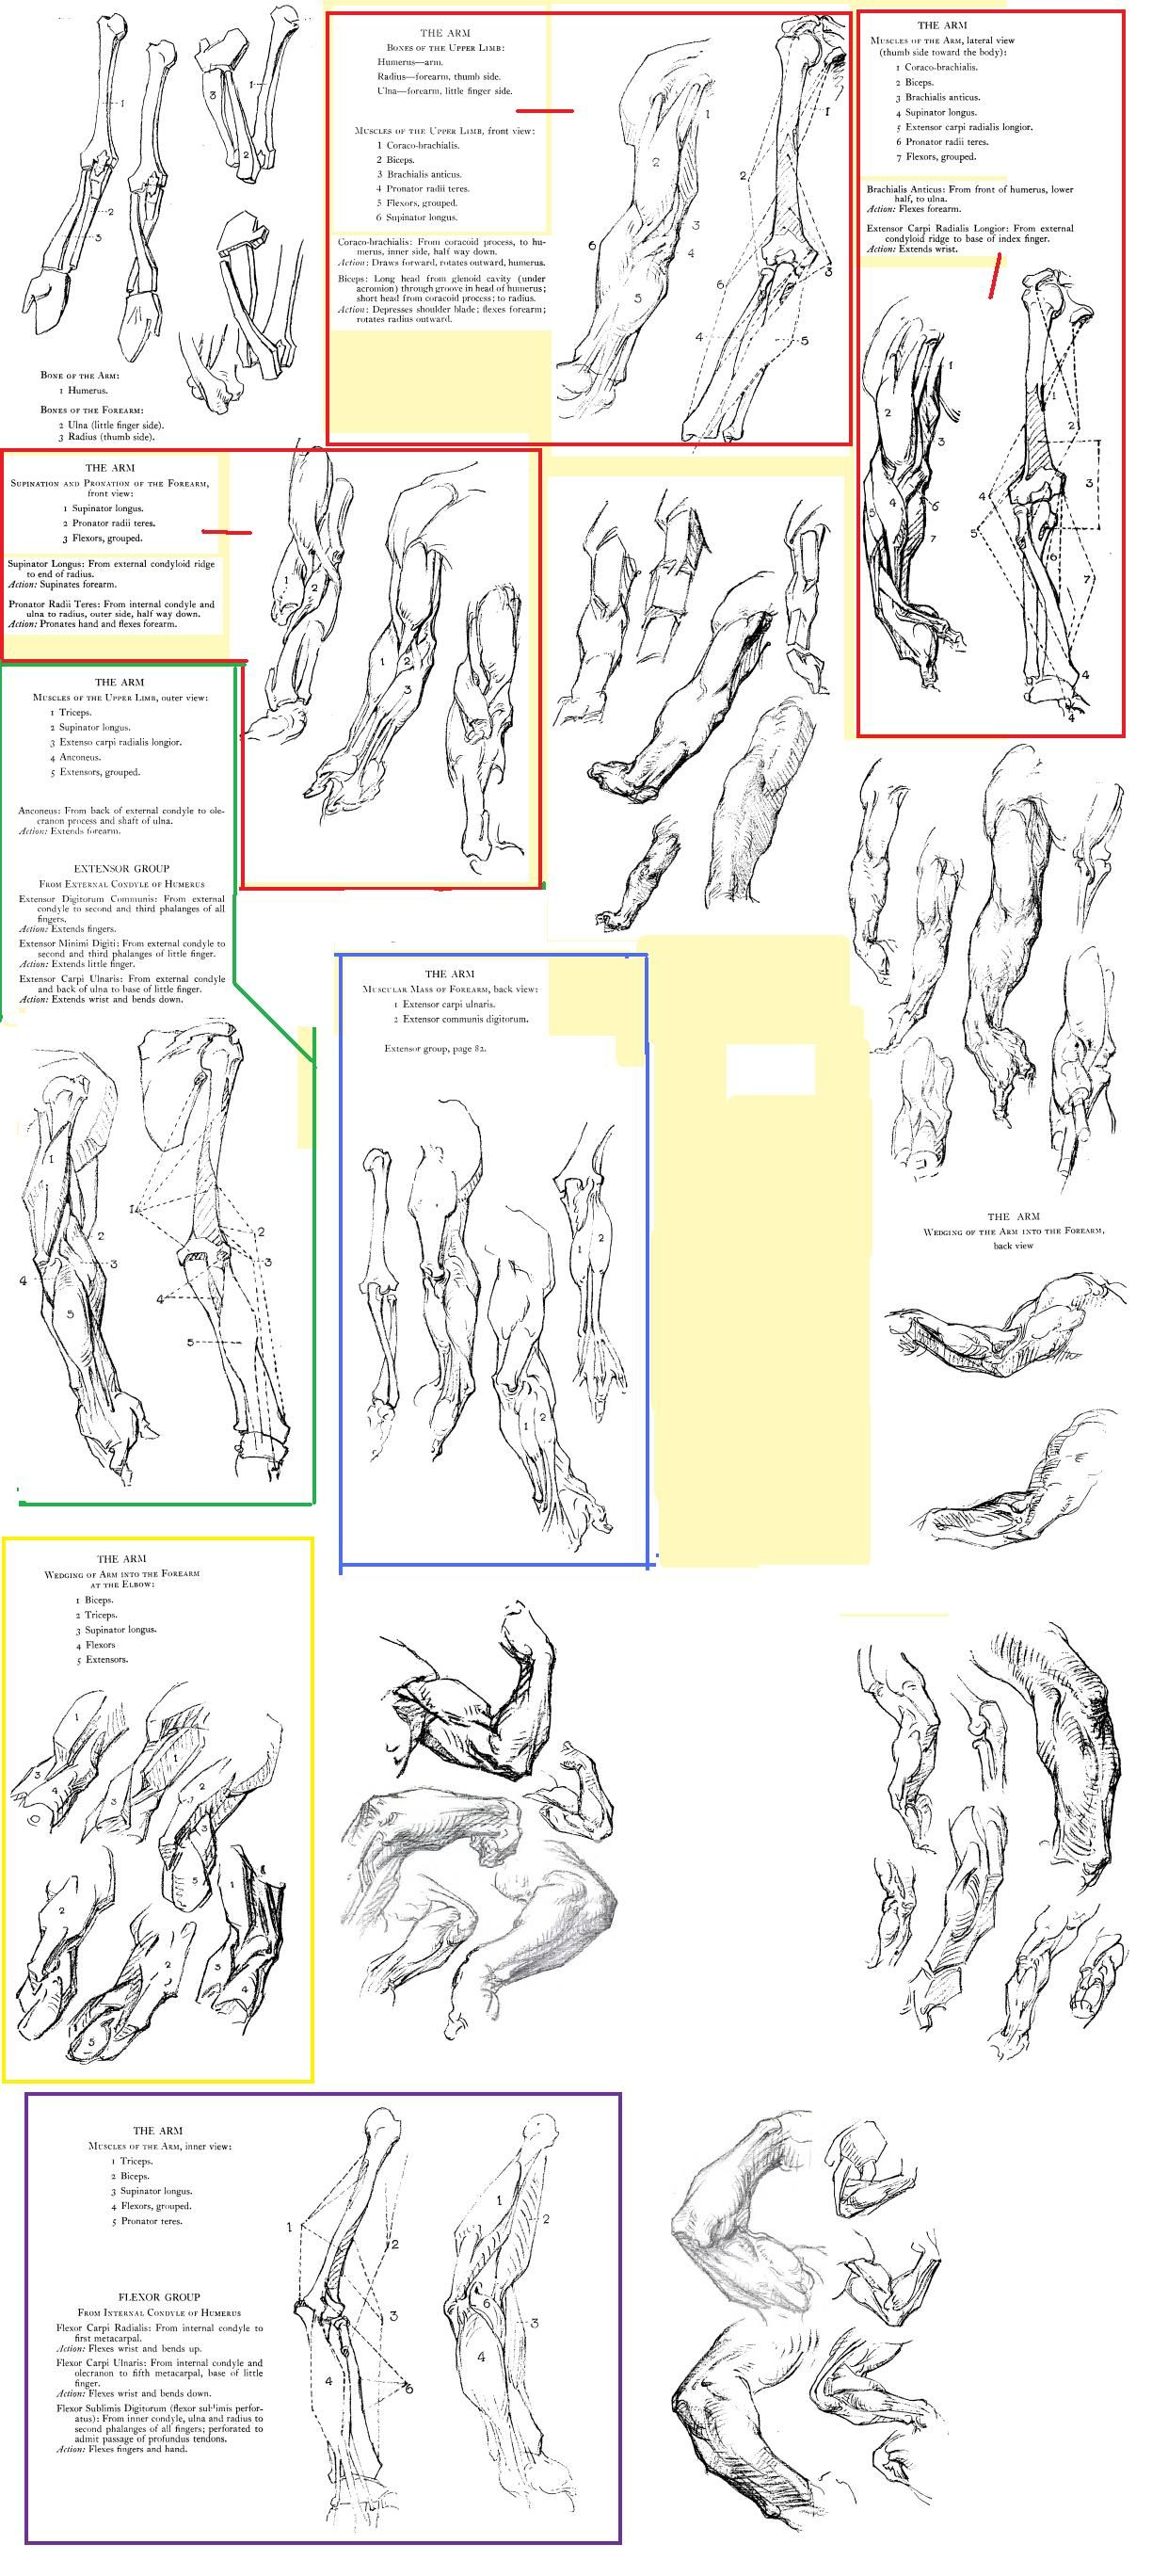 george bridgman constructive anatomy arm | George Bridgman ...